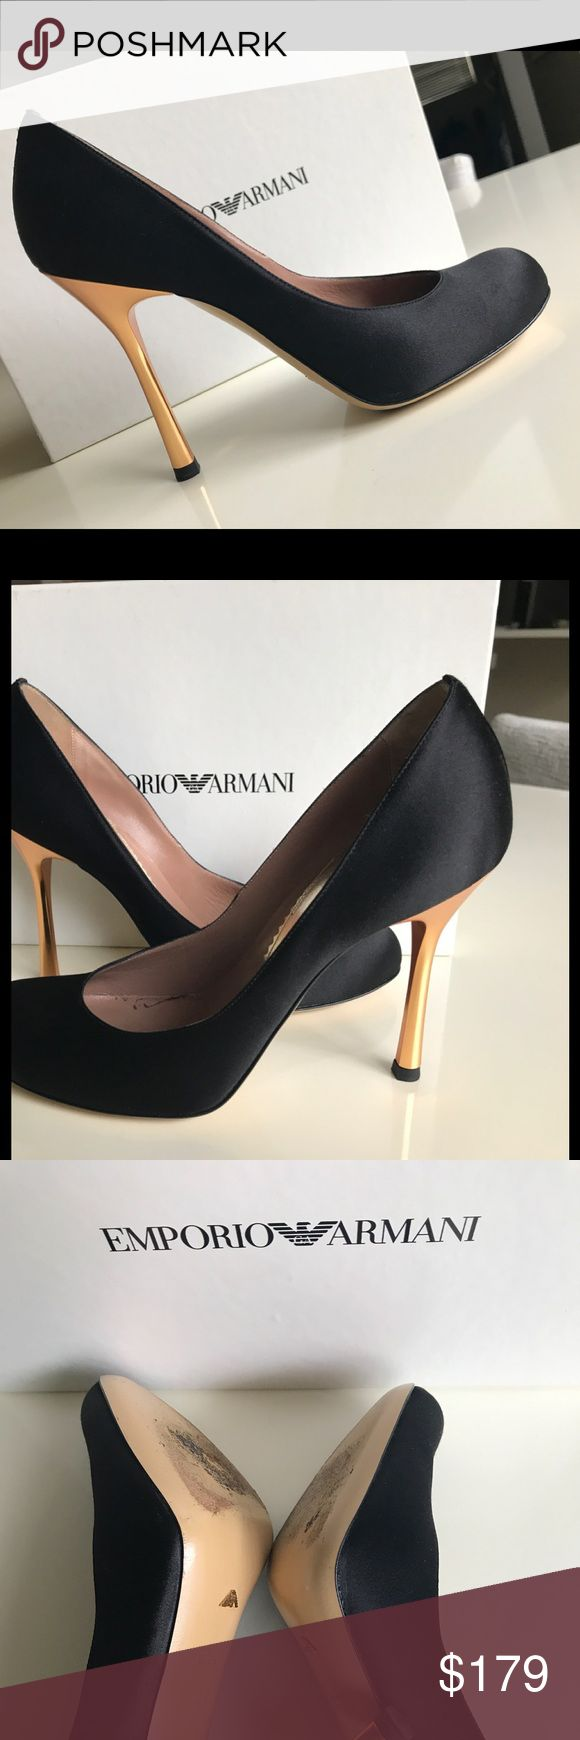 Emporio Armani black satin evening shoes Emporio Armani super chic Stylish black satin evening shoes Contrasting copper tone (rose gold?) stiletto heels (4in) Round toe Very slight sign of wear on the outsoles, otherwise they are in excellent condition Perfect for the holiday season and all special occasion events Comes with the original box  Eur 38 Emporio Armani Shoes Heels